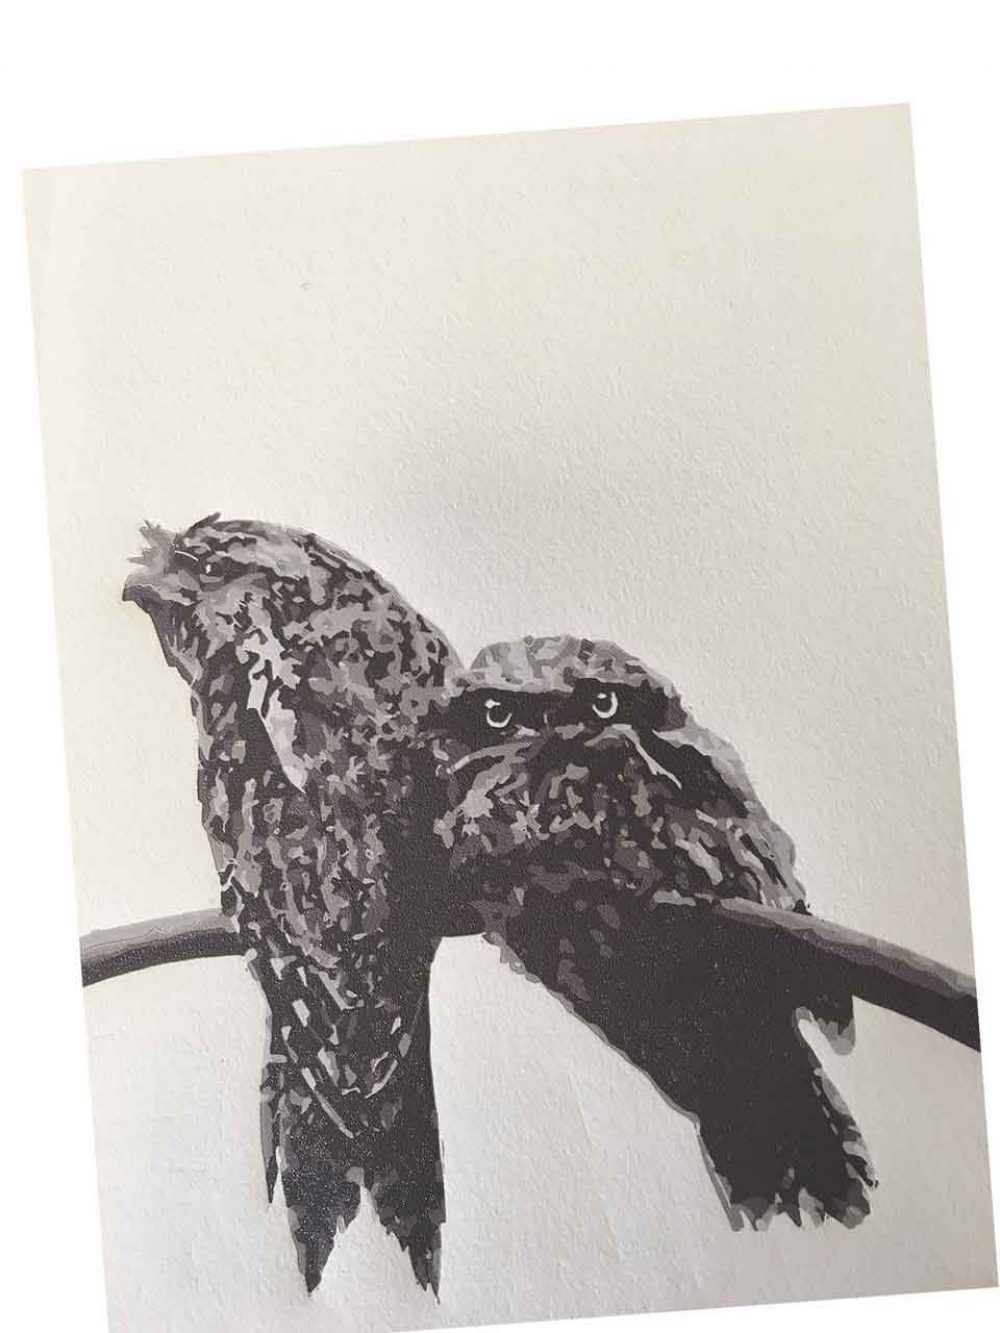 Tawny Frogmouth mother and chick reductive linoprint - 4th colour